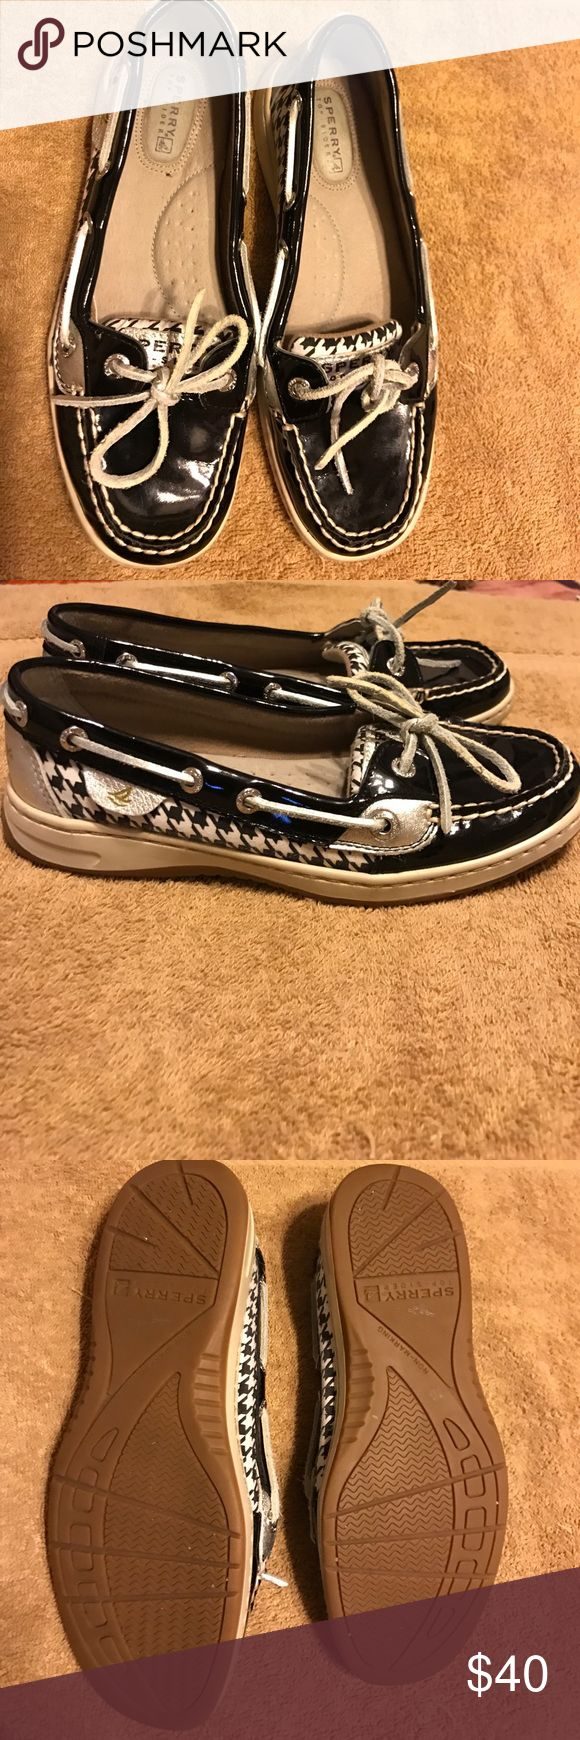 Sperry's Selling these cute shiny black Sperry's! In very good condition. Smoke free home! Sperry Top-Sider Shoes Flats & Loafers